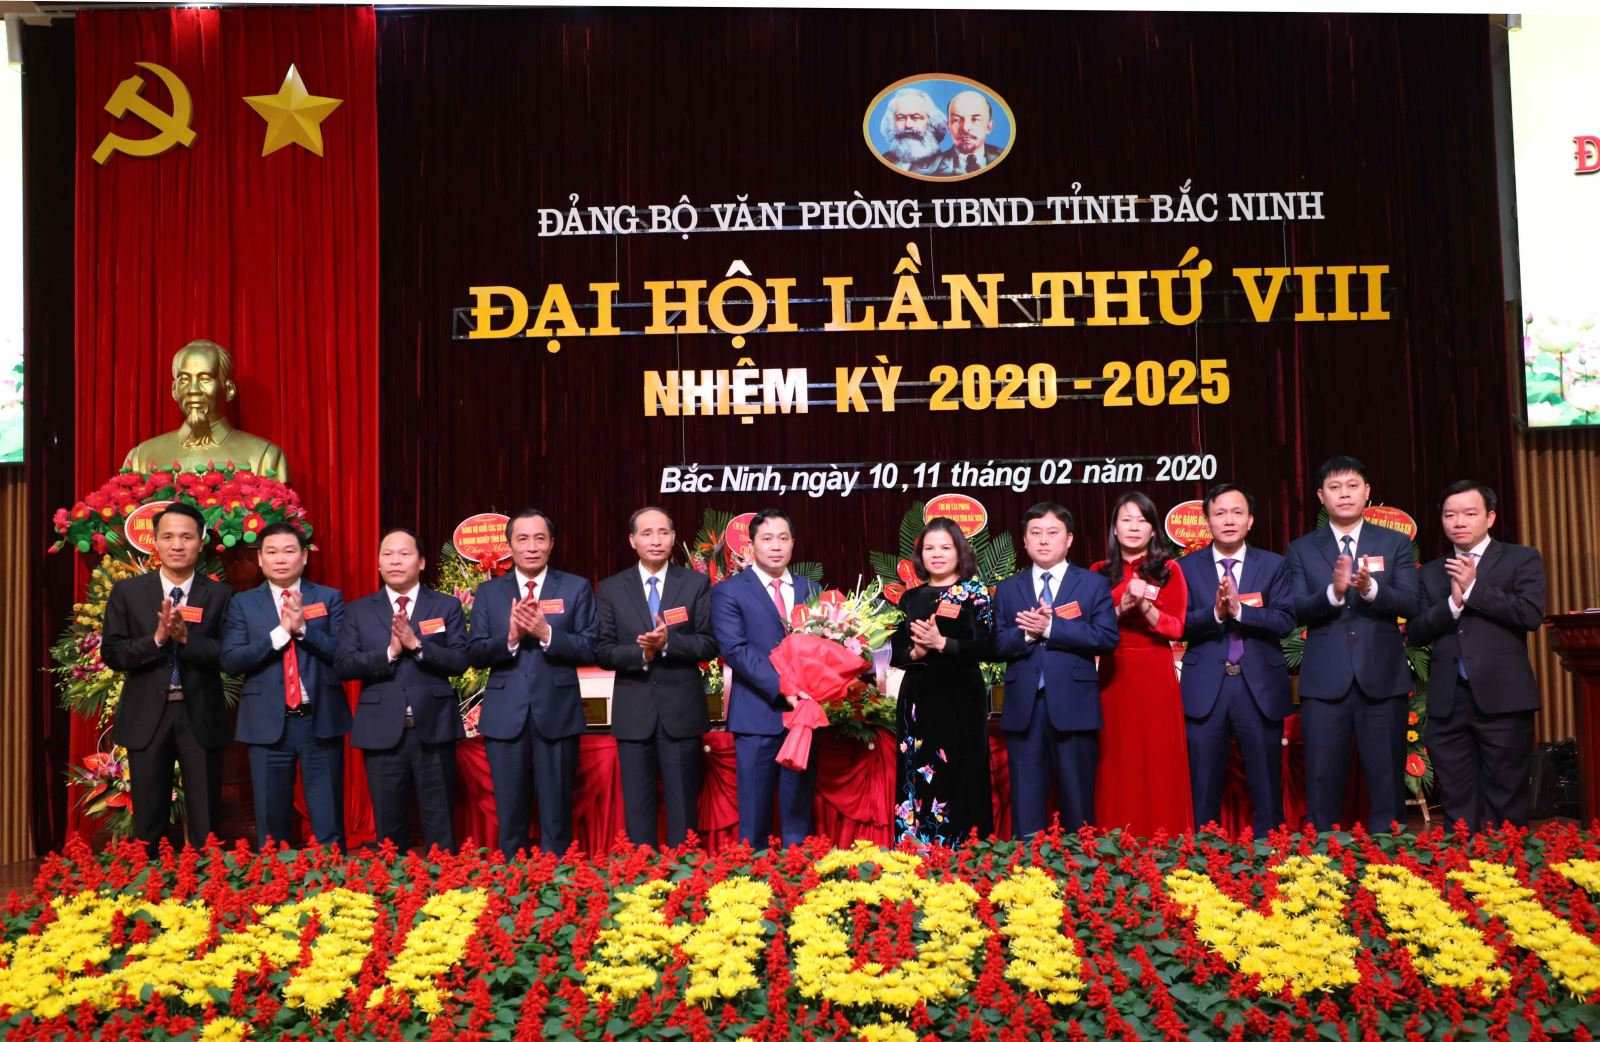 Bac Ninh province opens model Party Congress